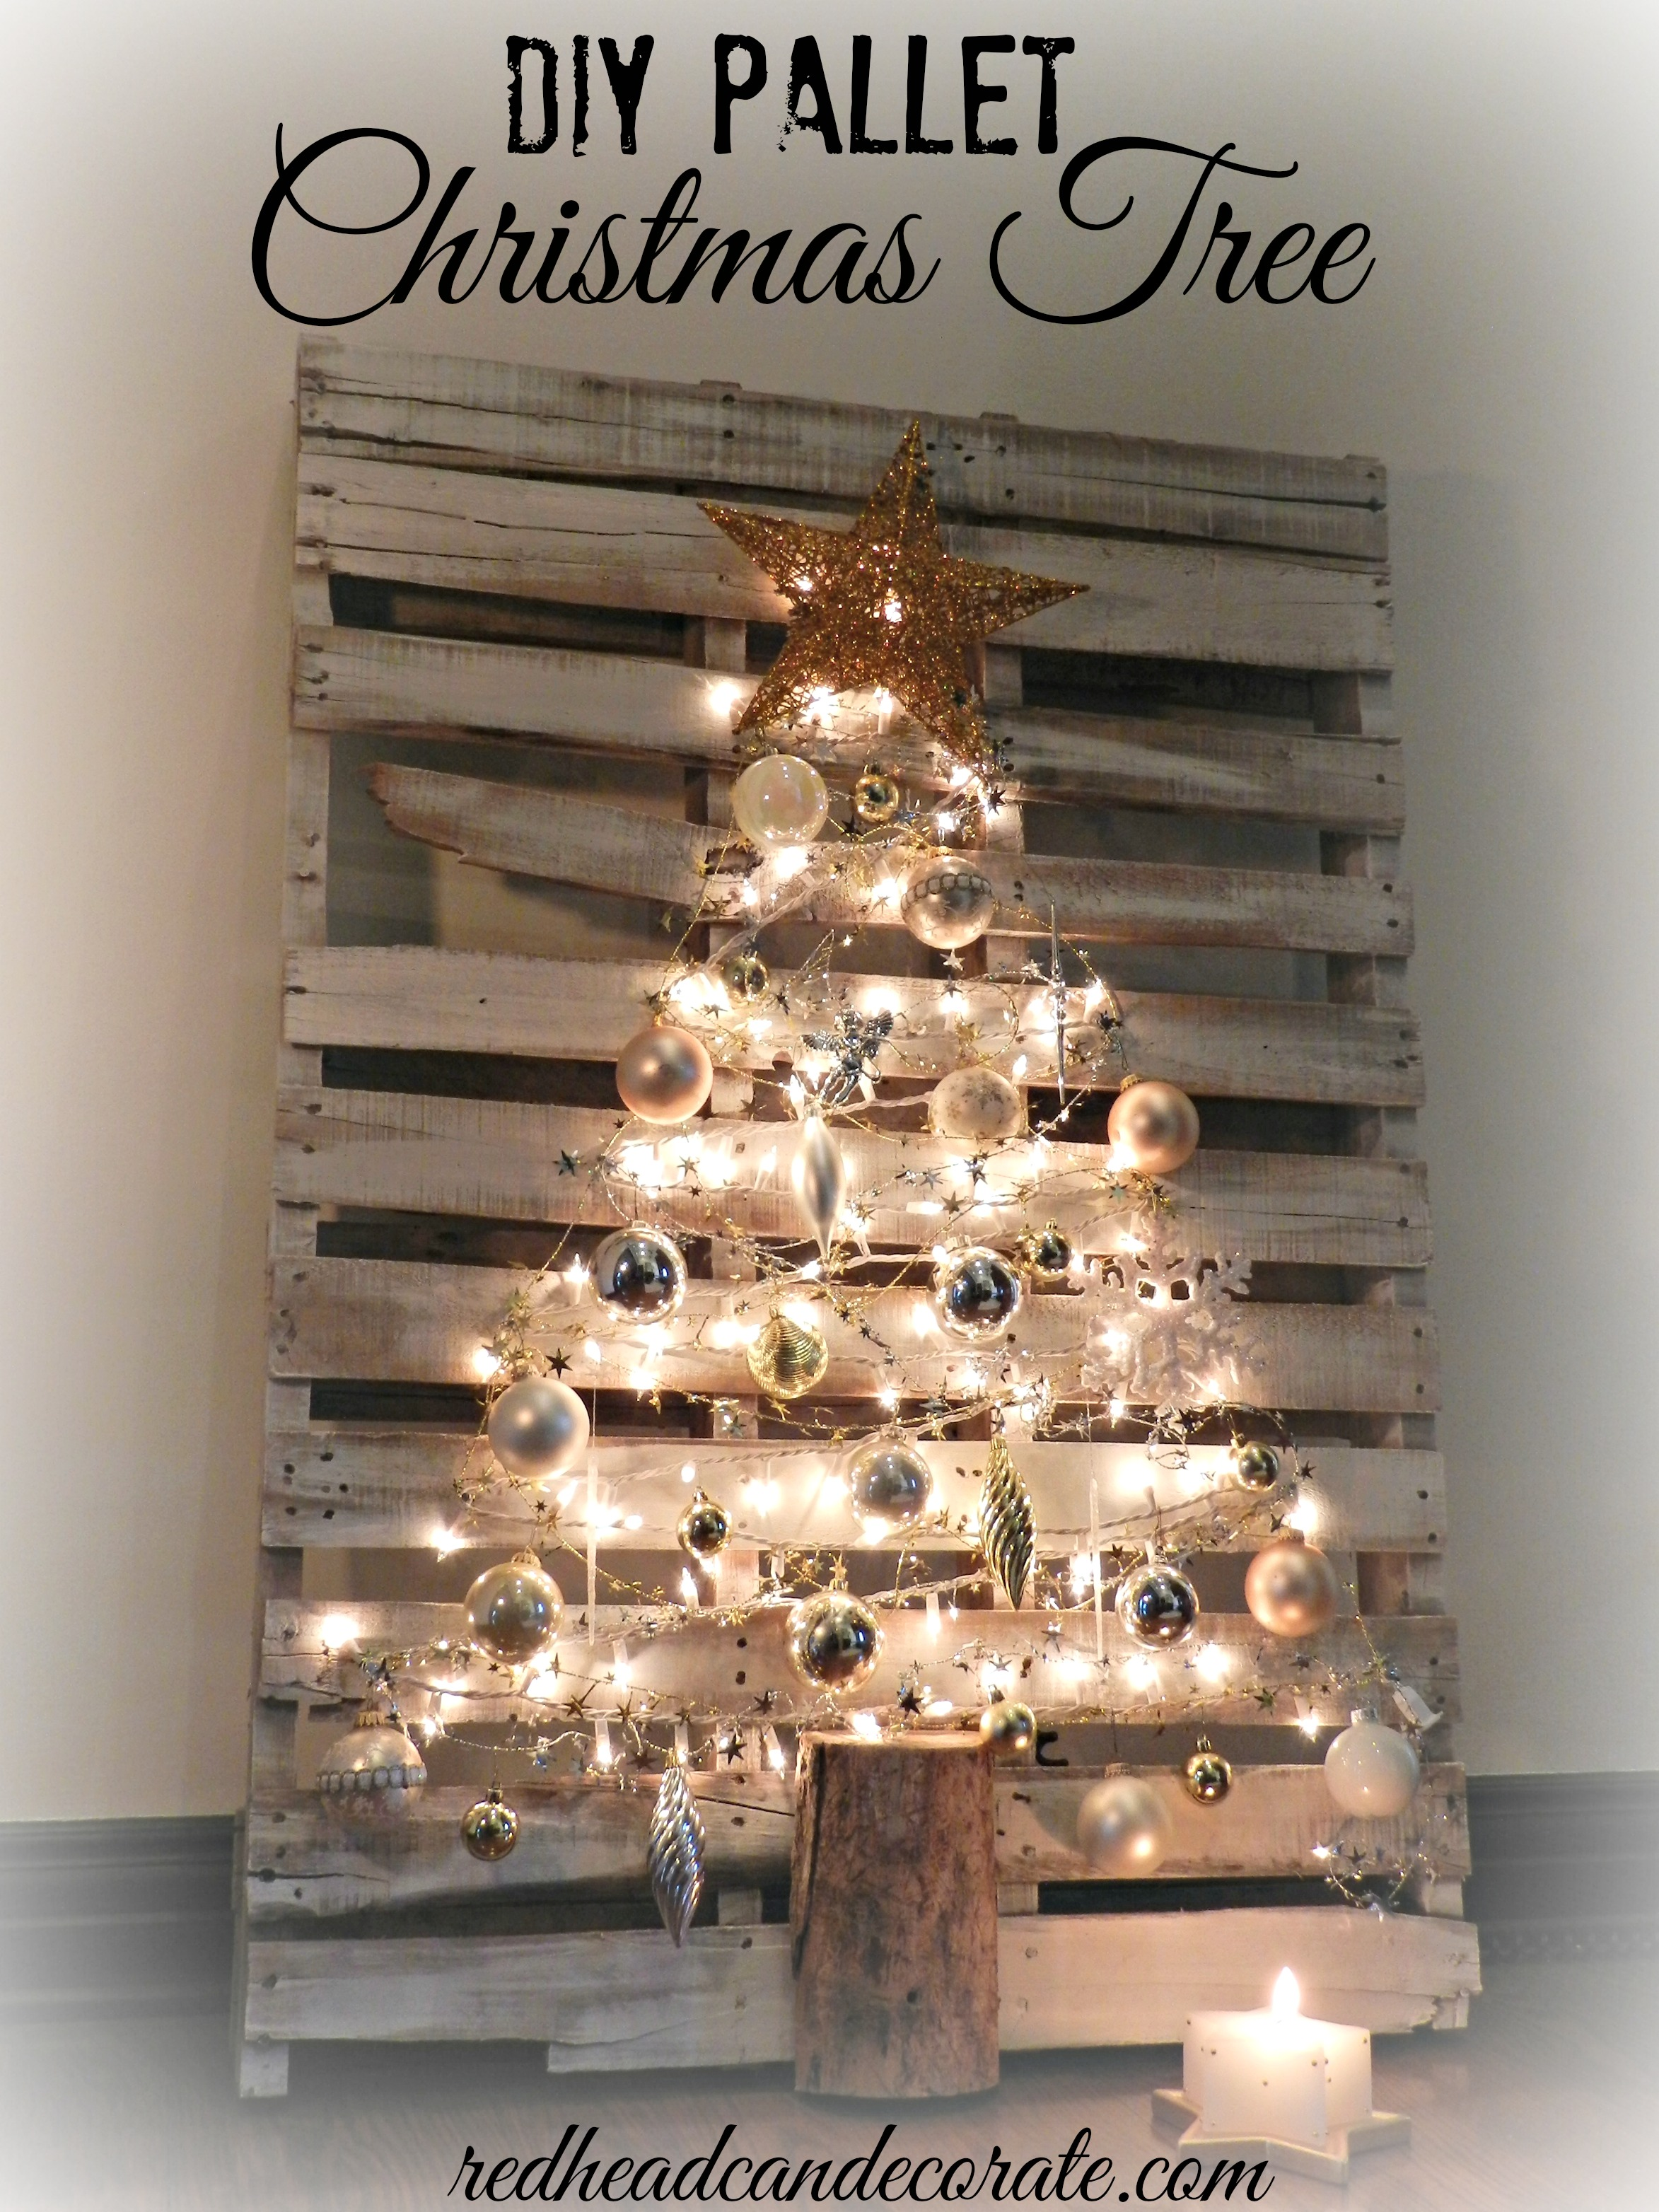 diy-pallet-christmas-tree-by-redhead-can-decorate